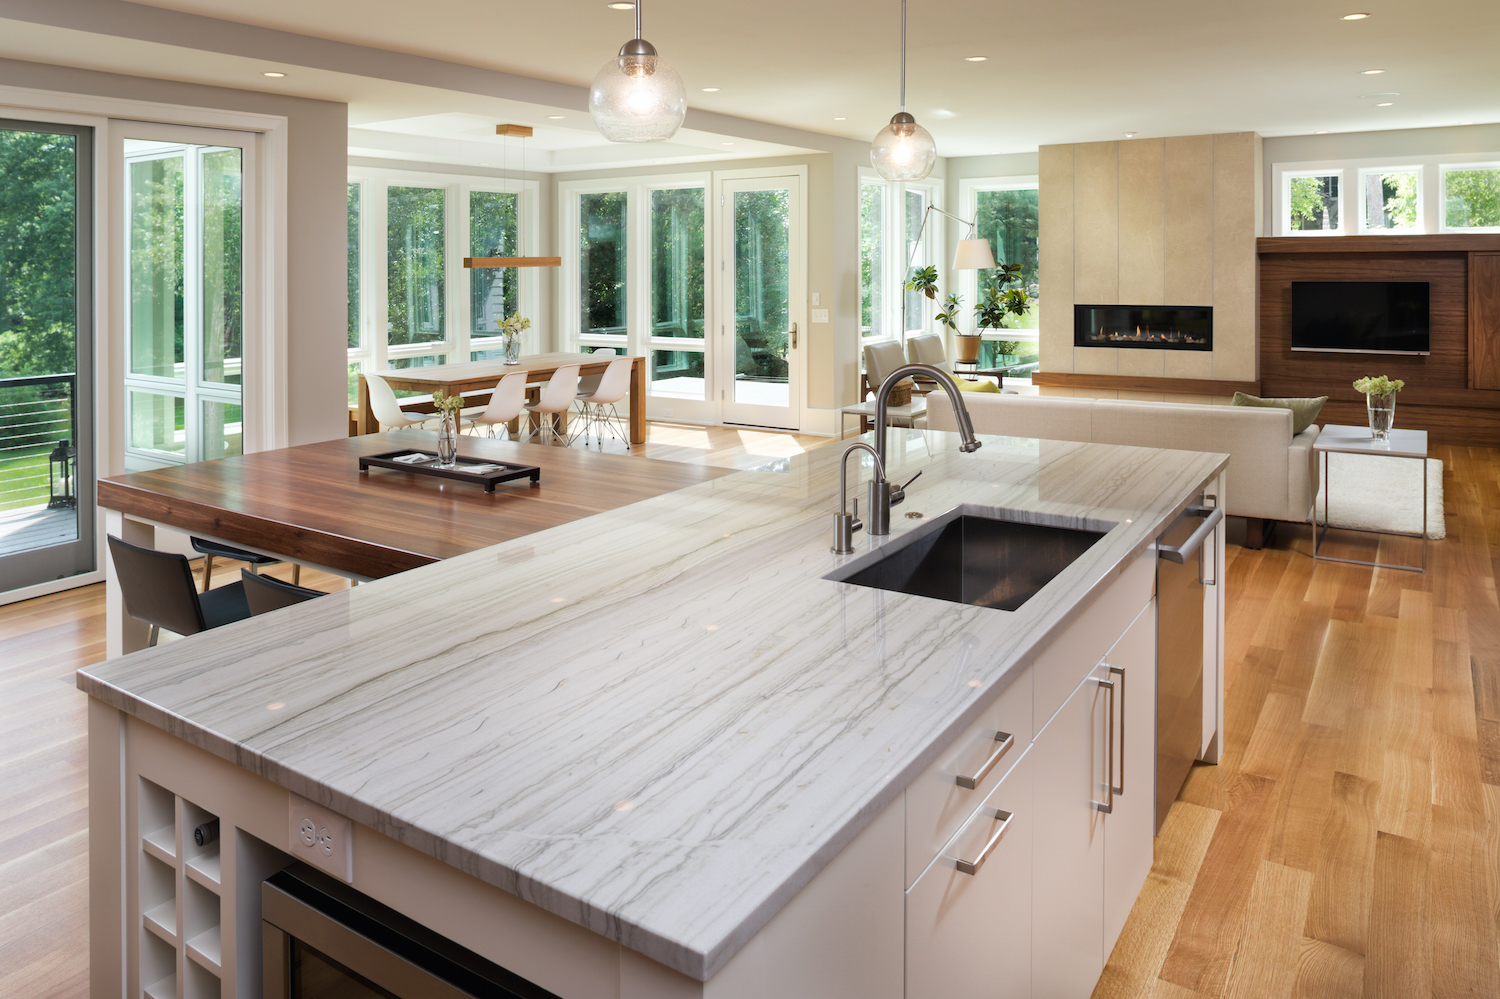 Natural Stone Countertops In Kitchen